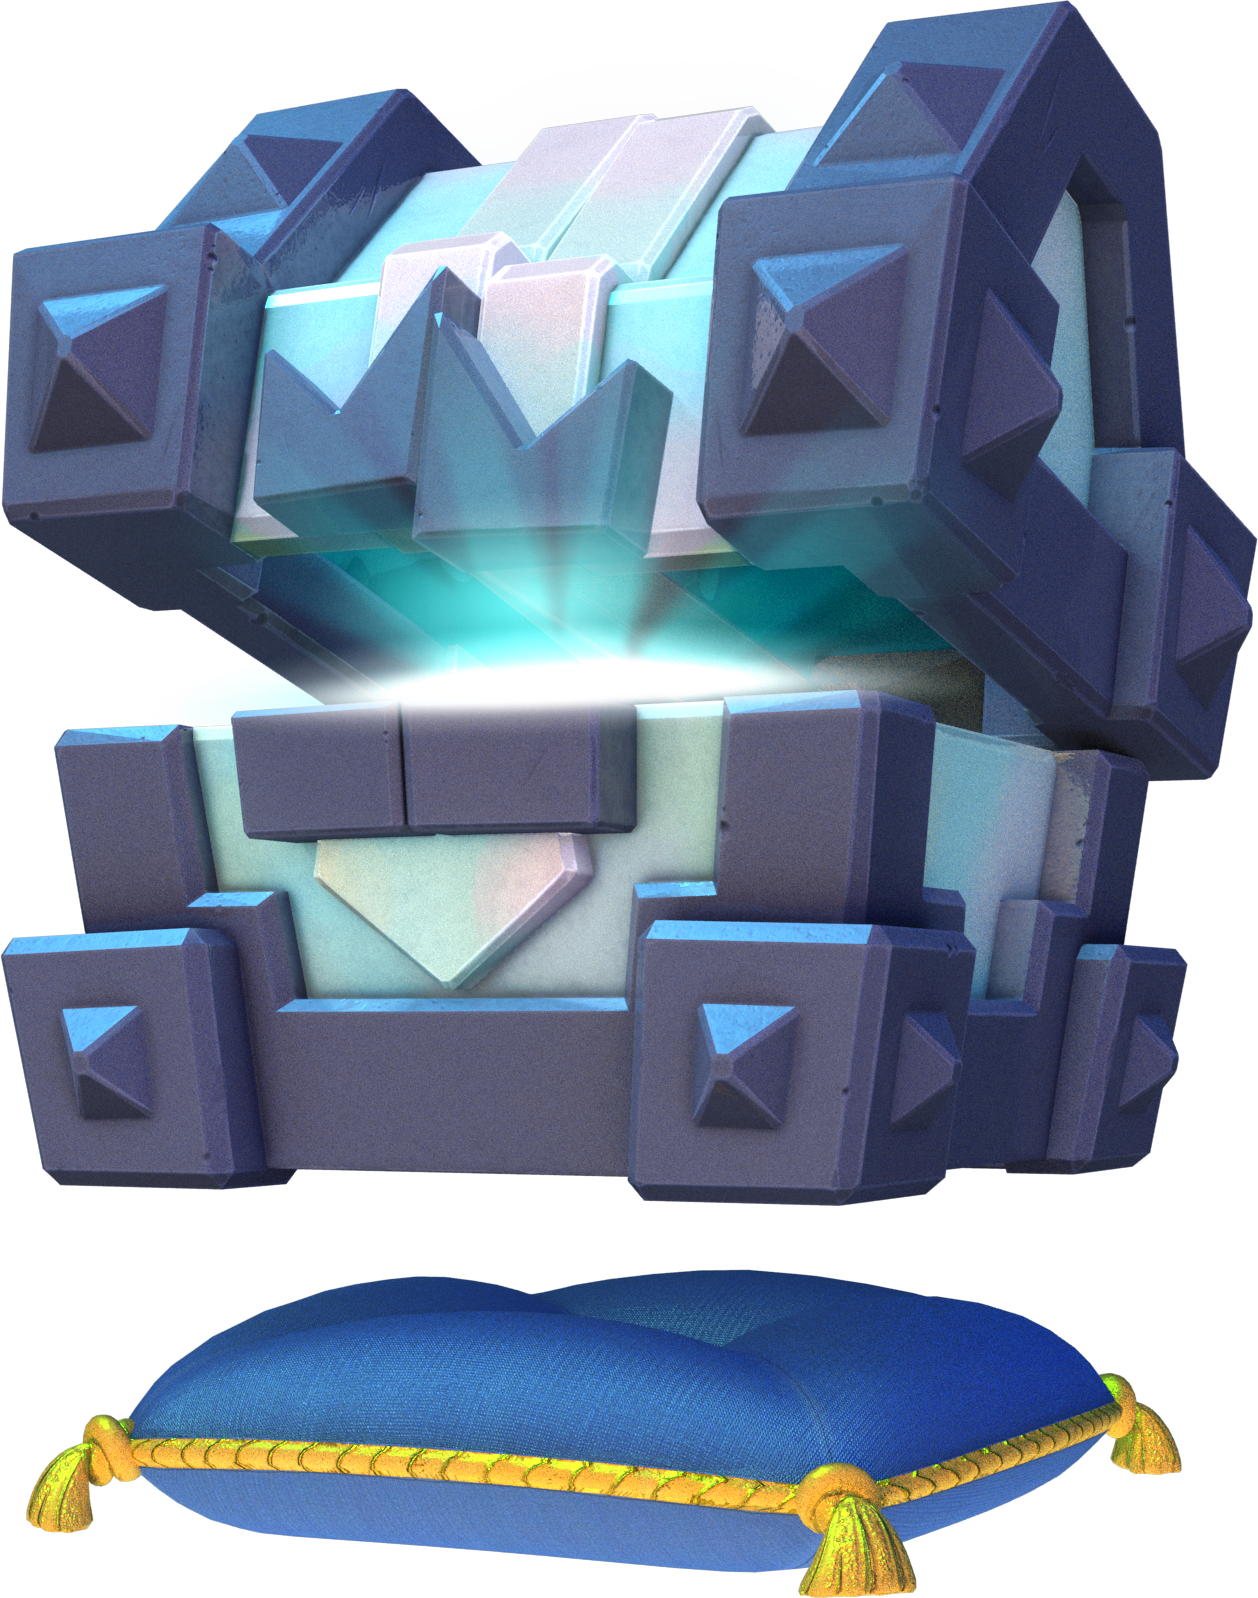 Legendary chest png. Image kings clash royale